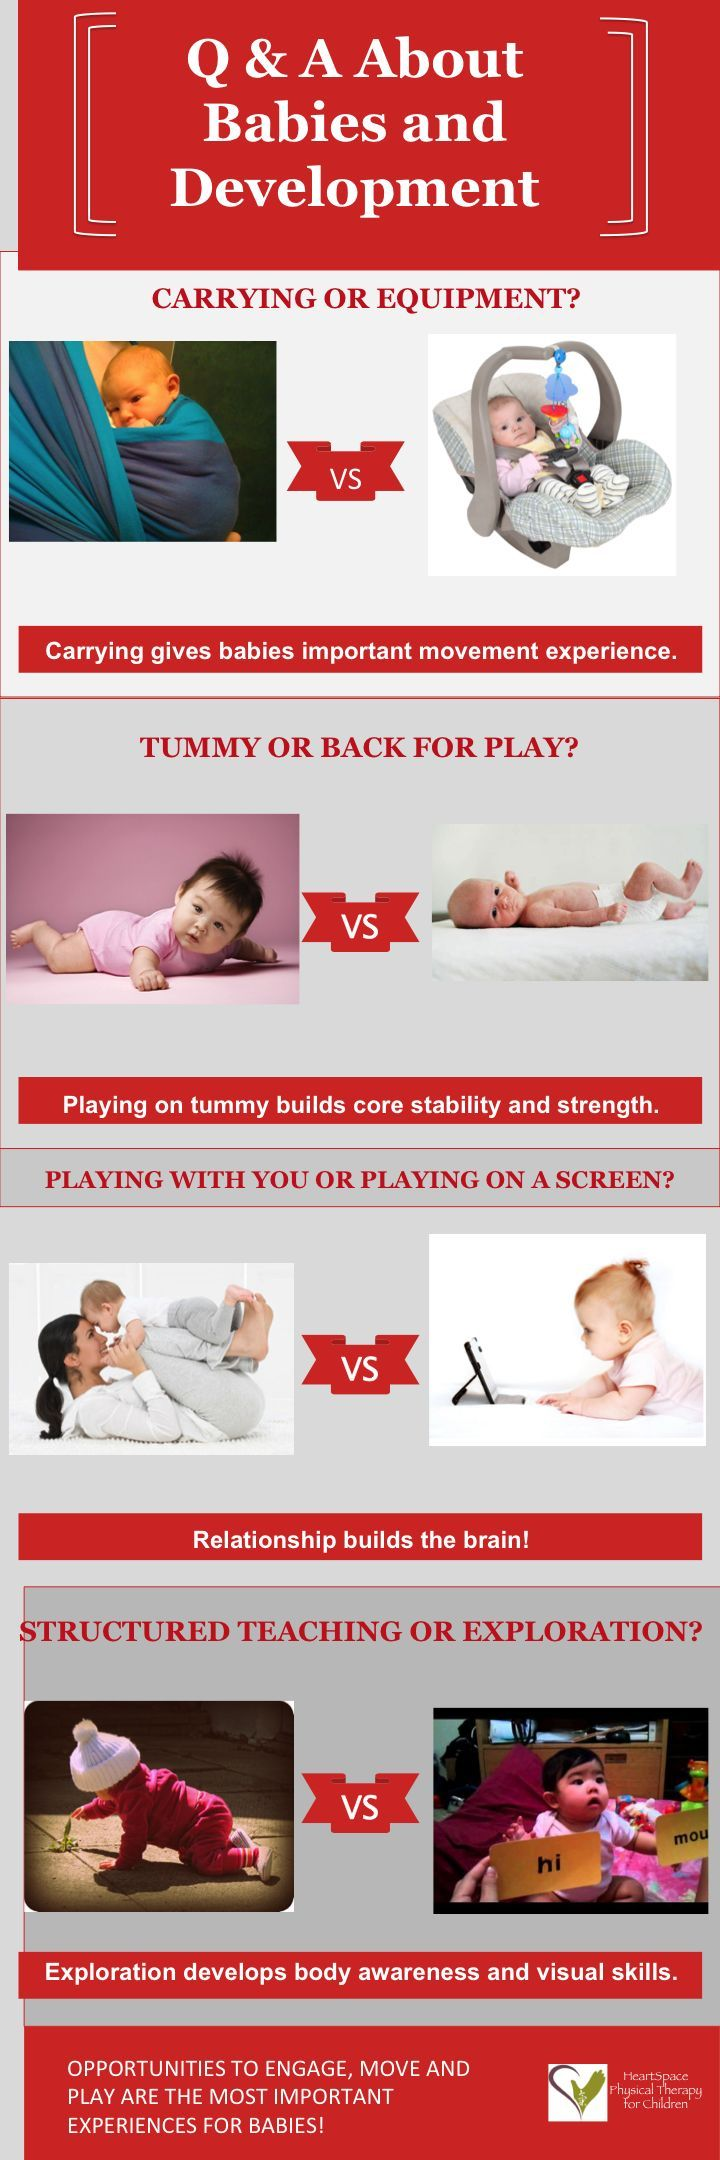 Importance of physical therapy - An Infographic Regarding Some Key Activities For Babies And Why They Are Important